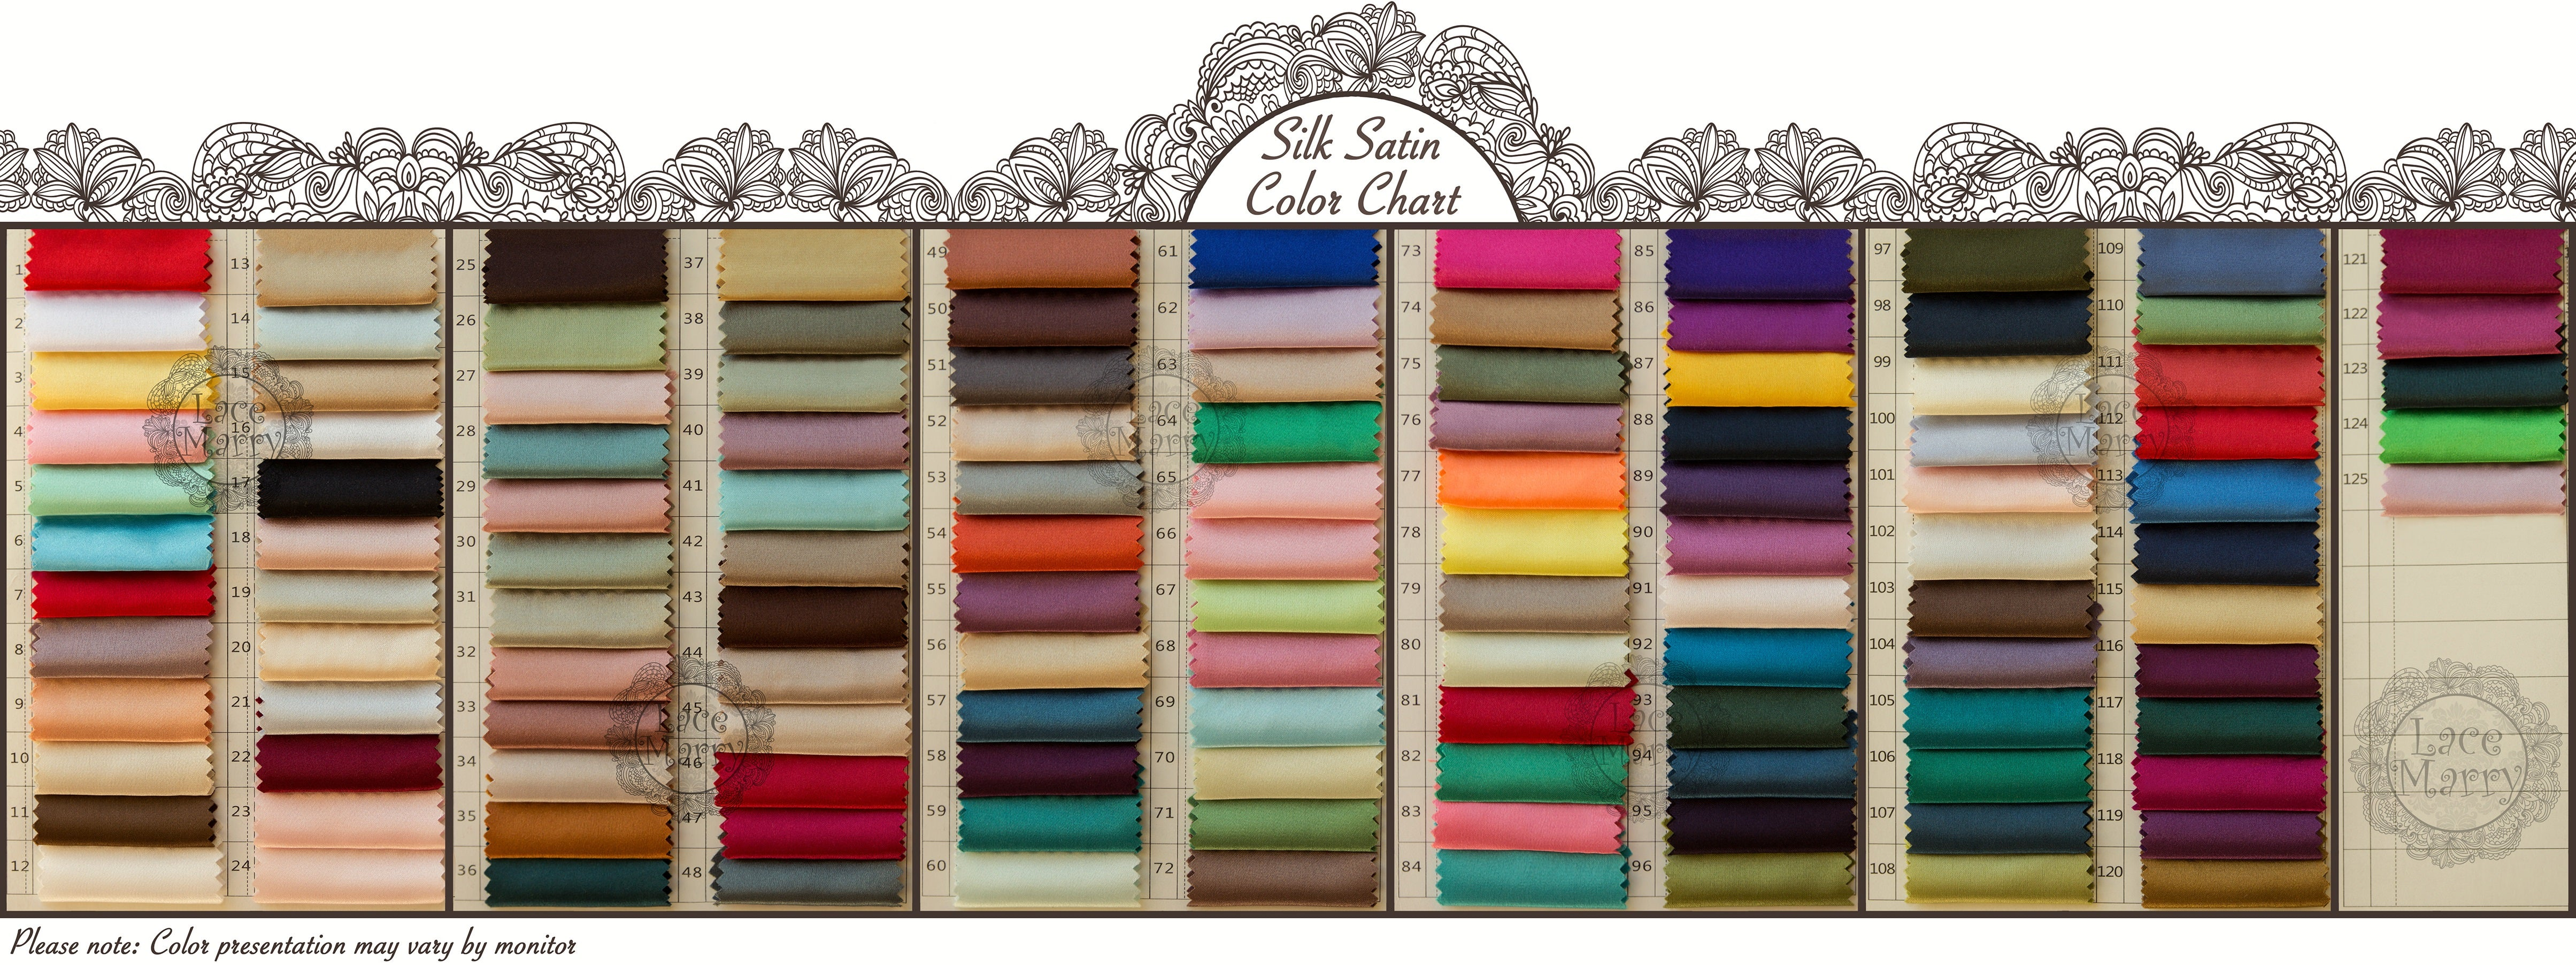 Lacemarry color charts of satin chiffon taffeta and strength silk satin color chart nvjuhfo Images